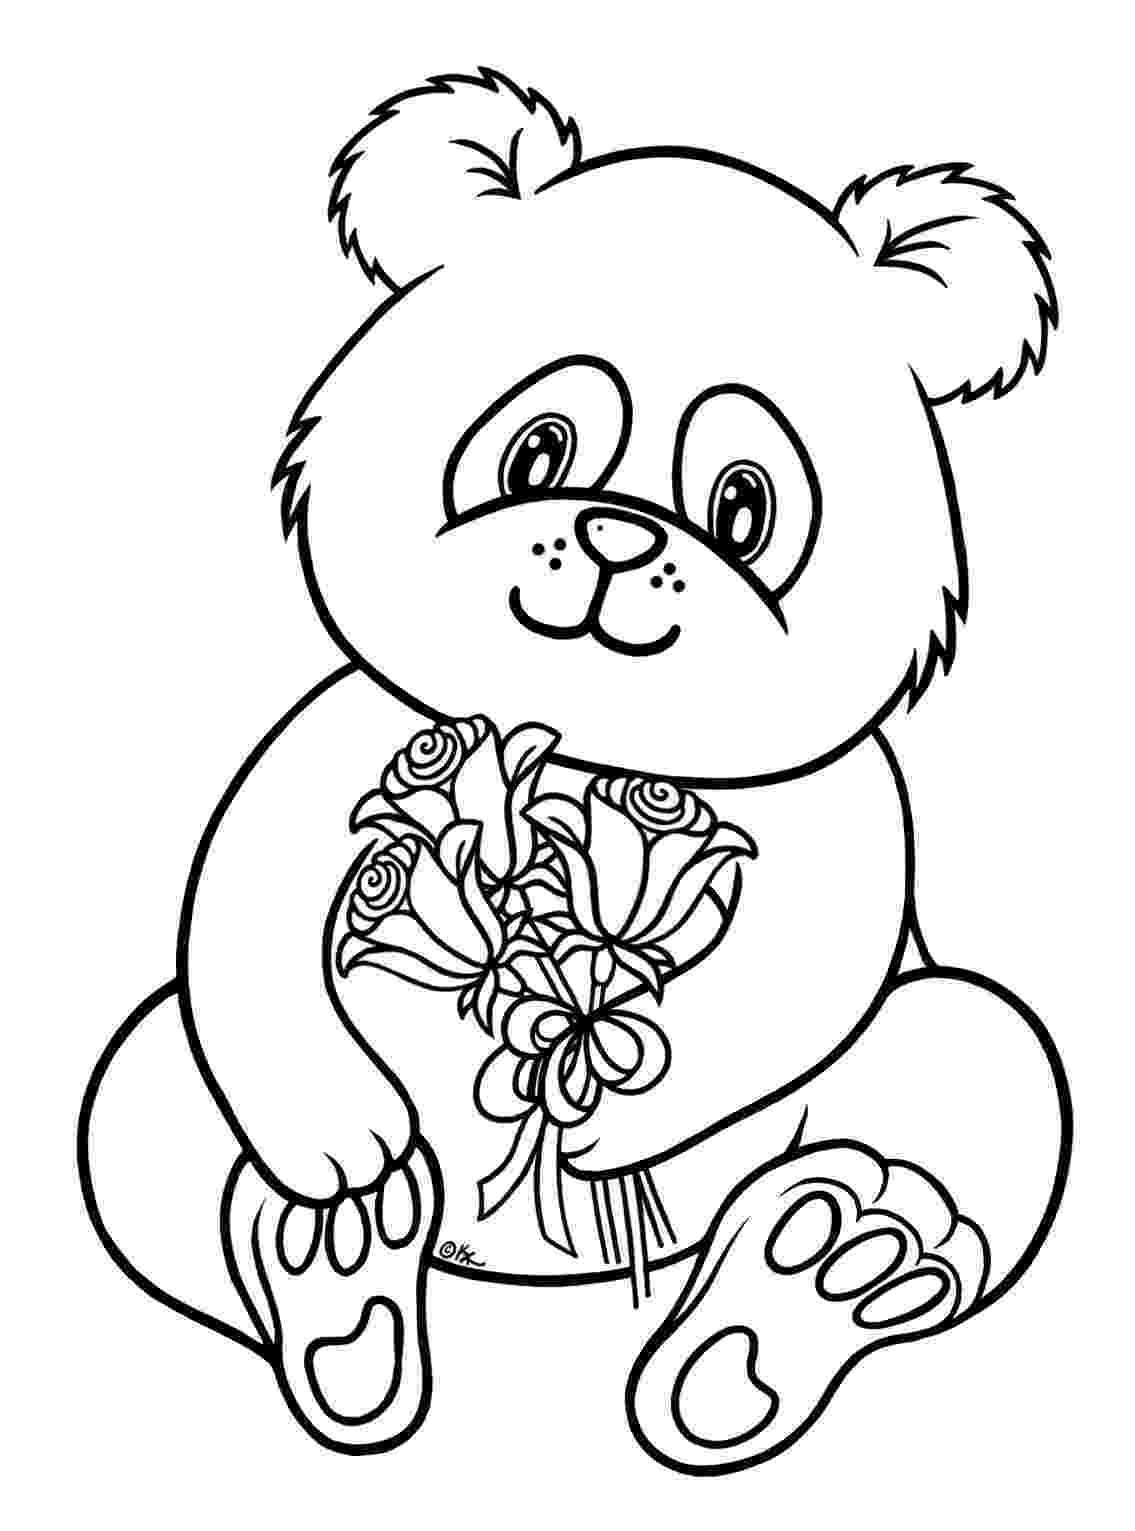 is for panda coloring pages panda coloring pages best coloring pages for kids is panda coloring pages for